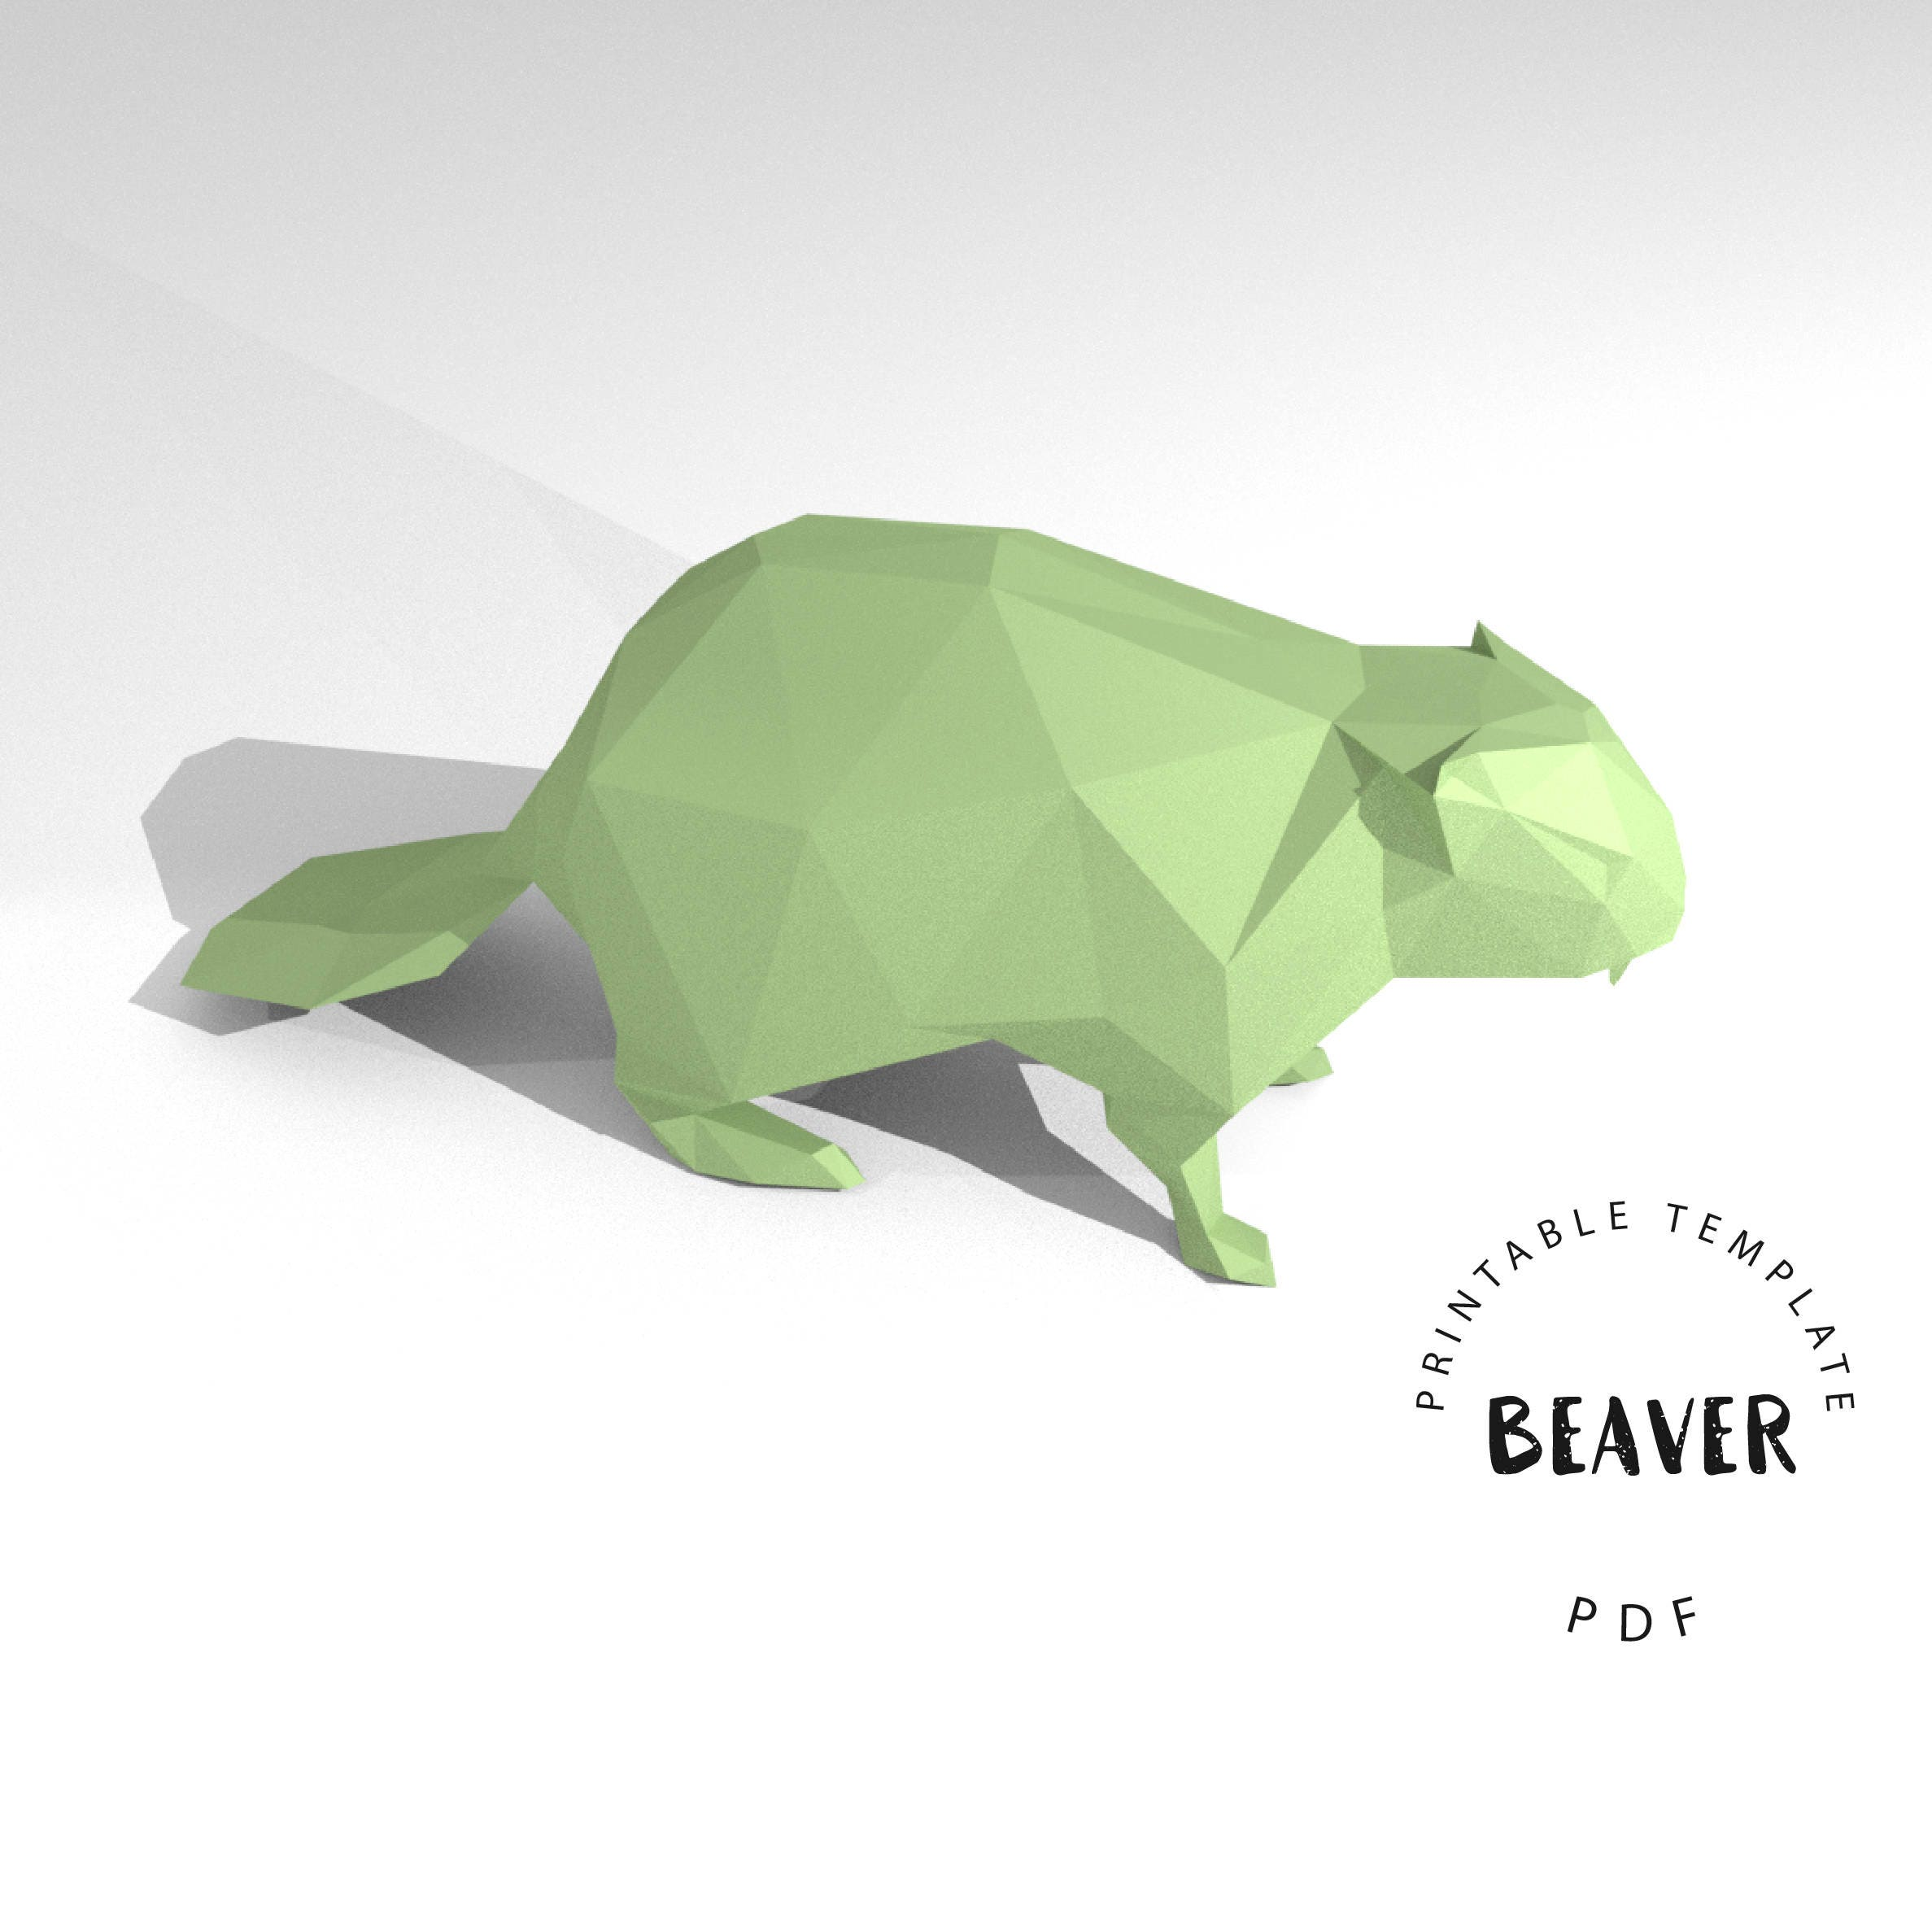 Printable diy template pdf beaver low poly paper model template this is a digital file jeuxipadfo Choice Image